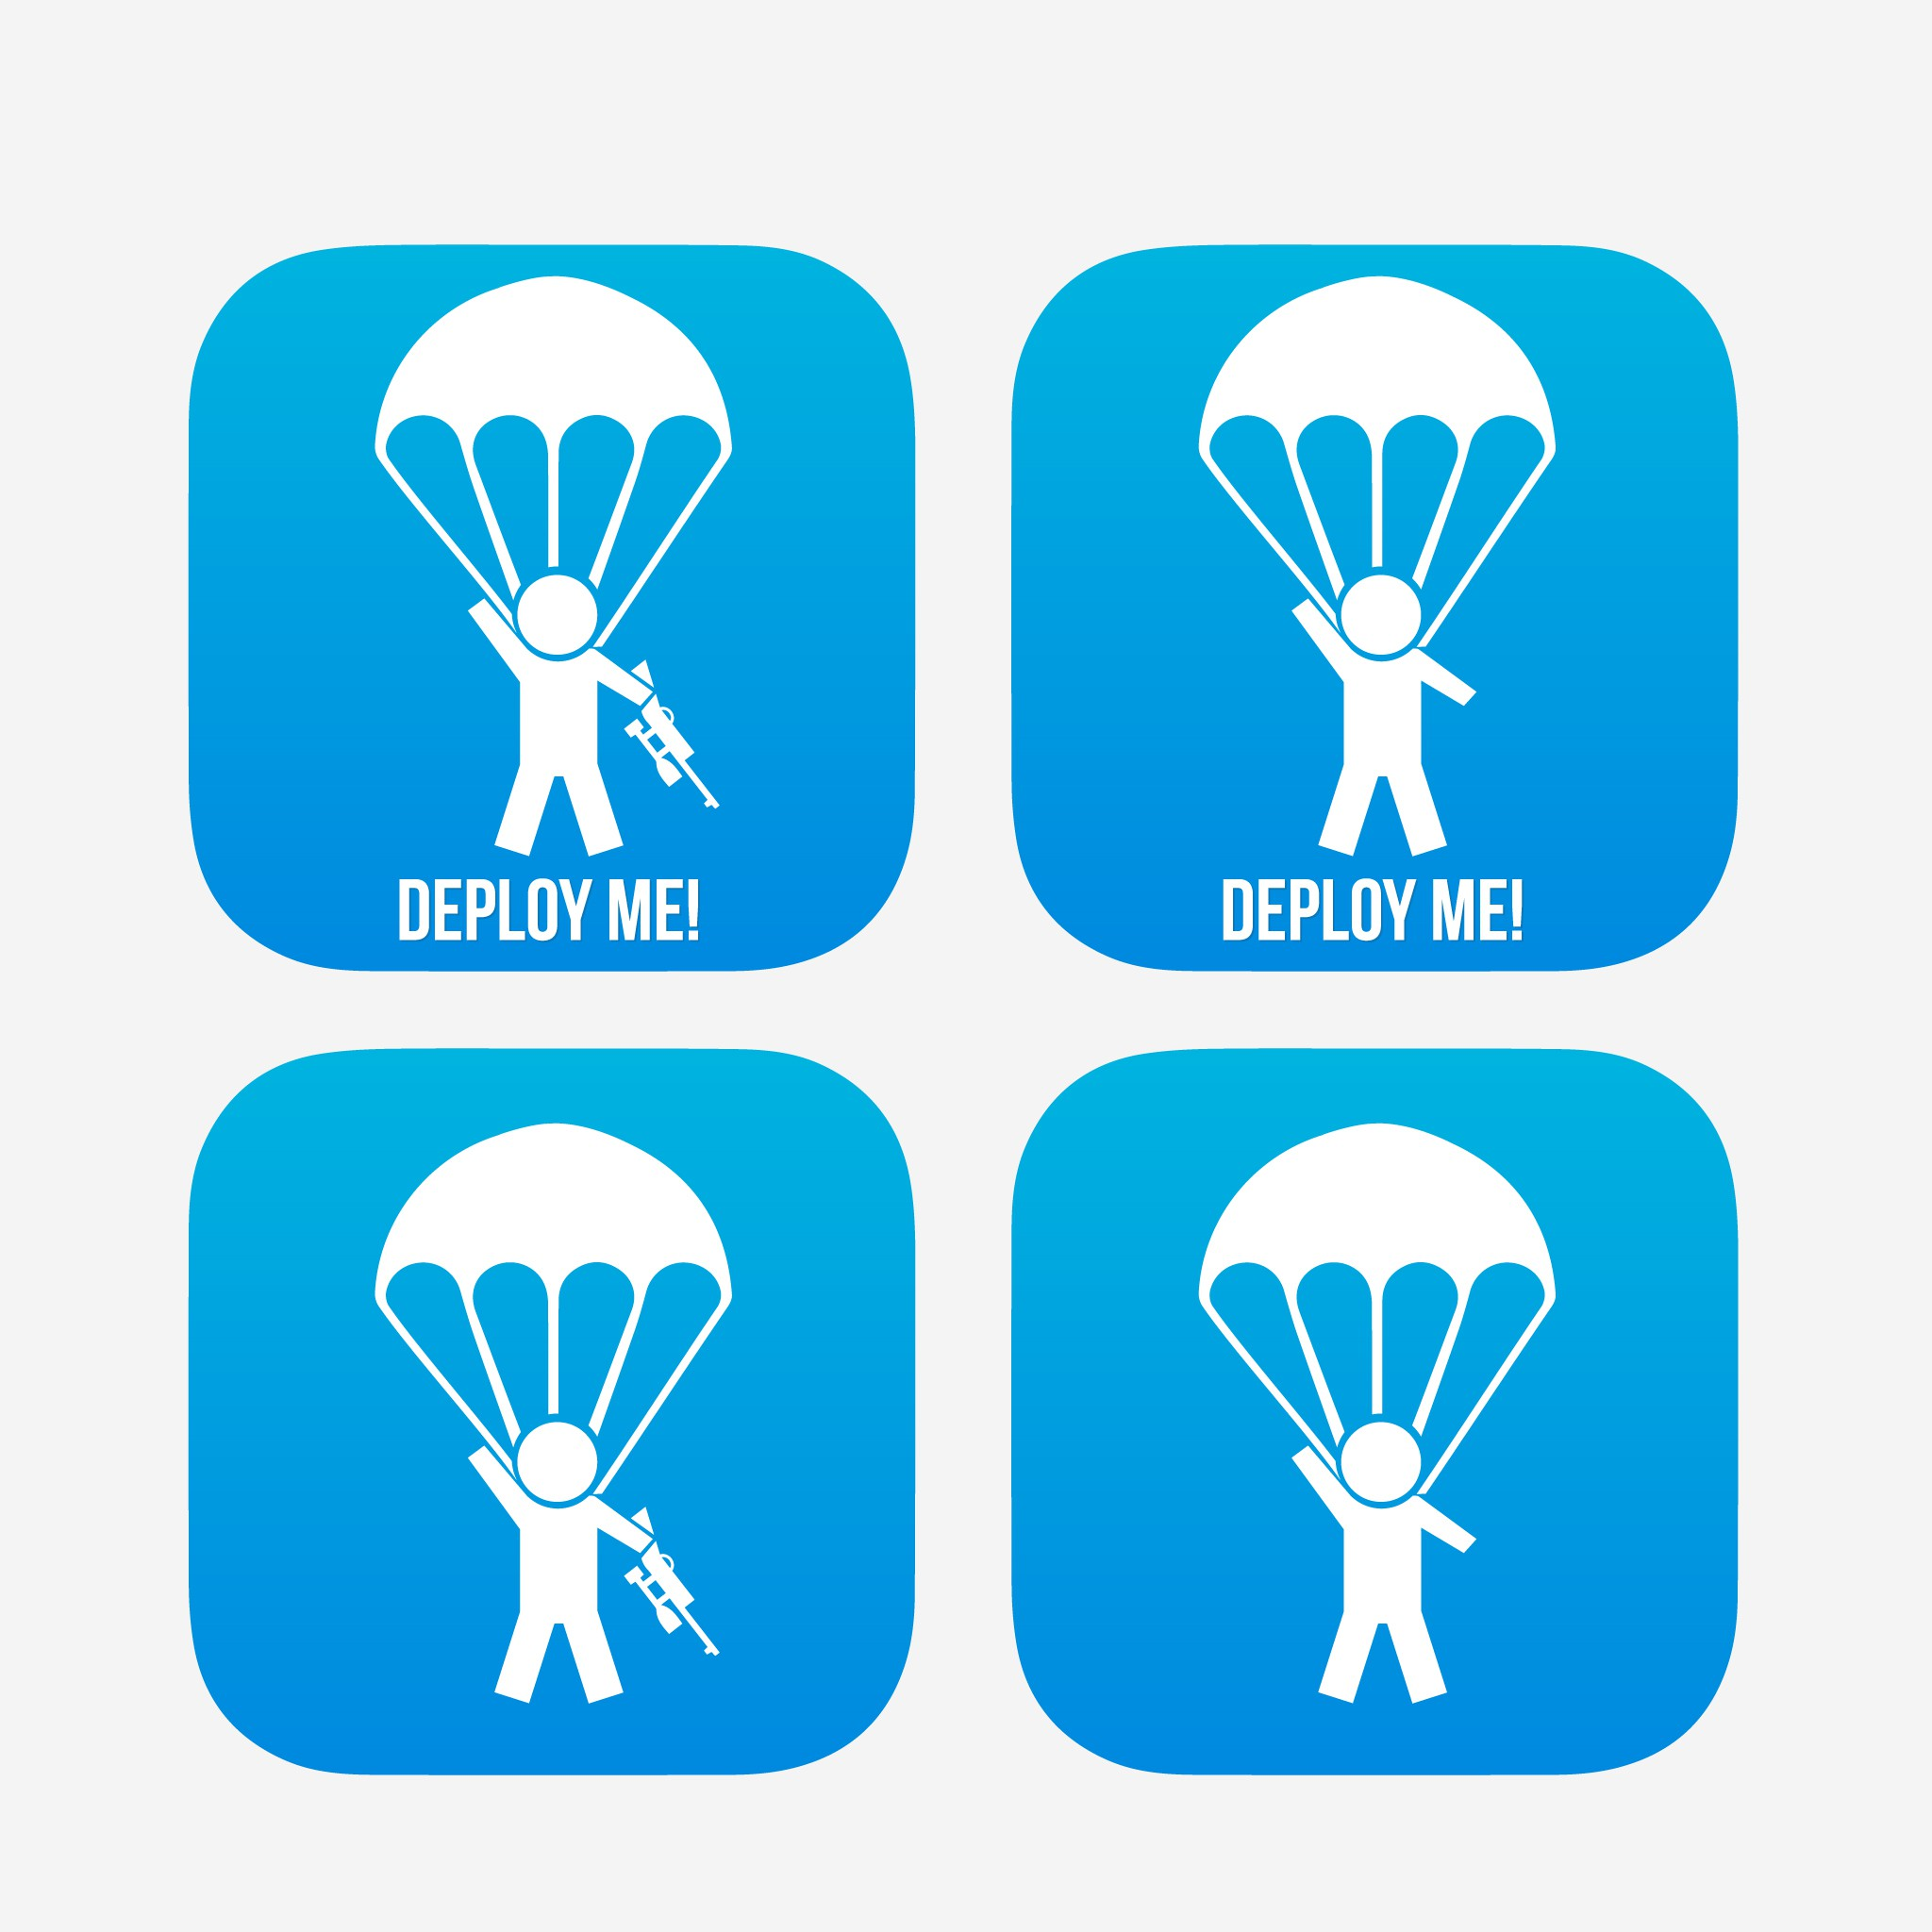 Little man on a parachute with a gun for an app!